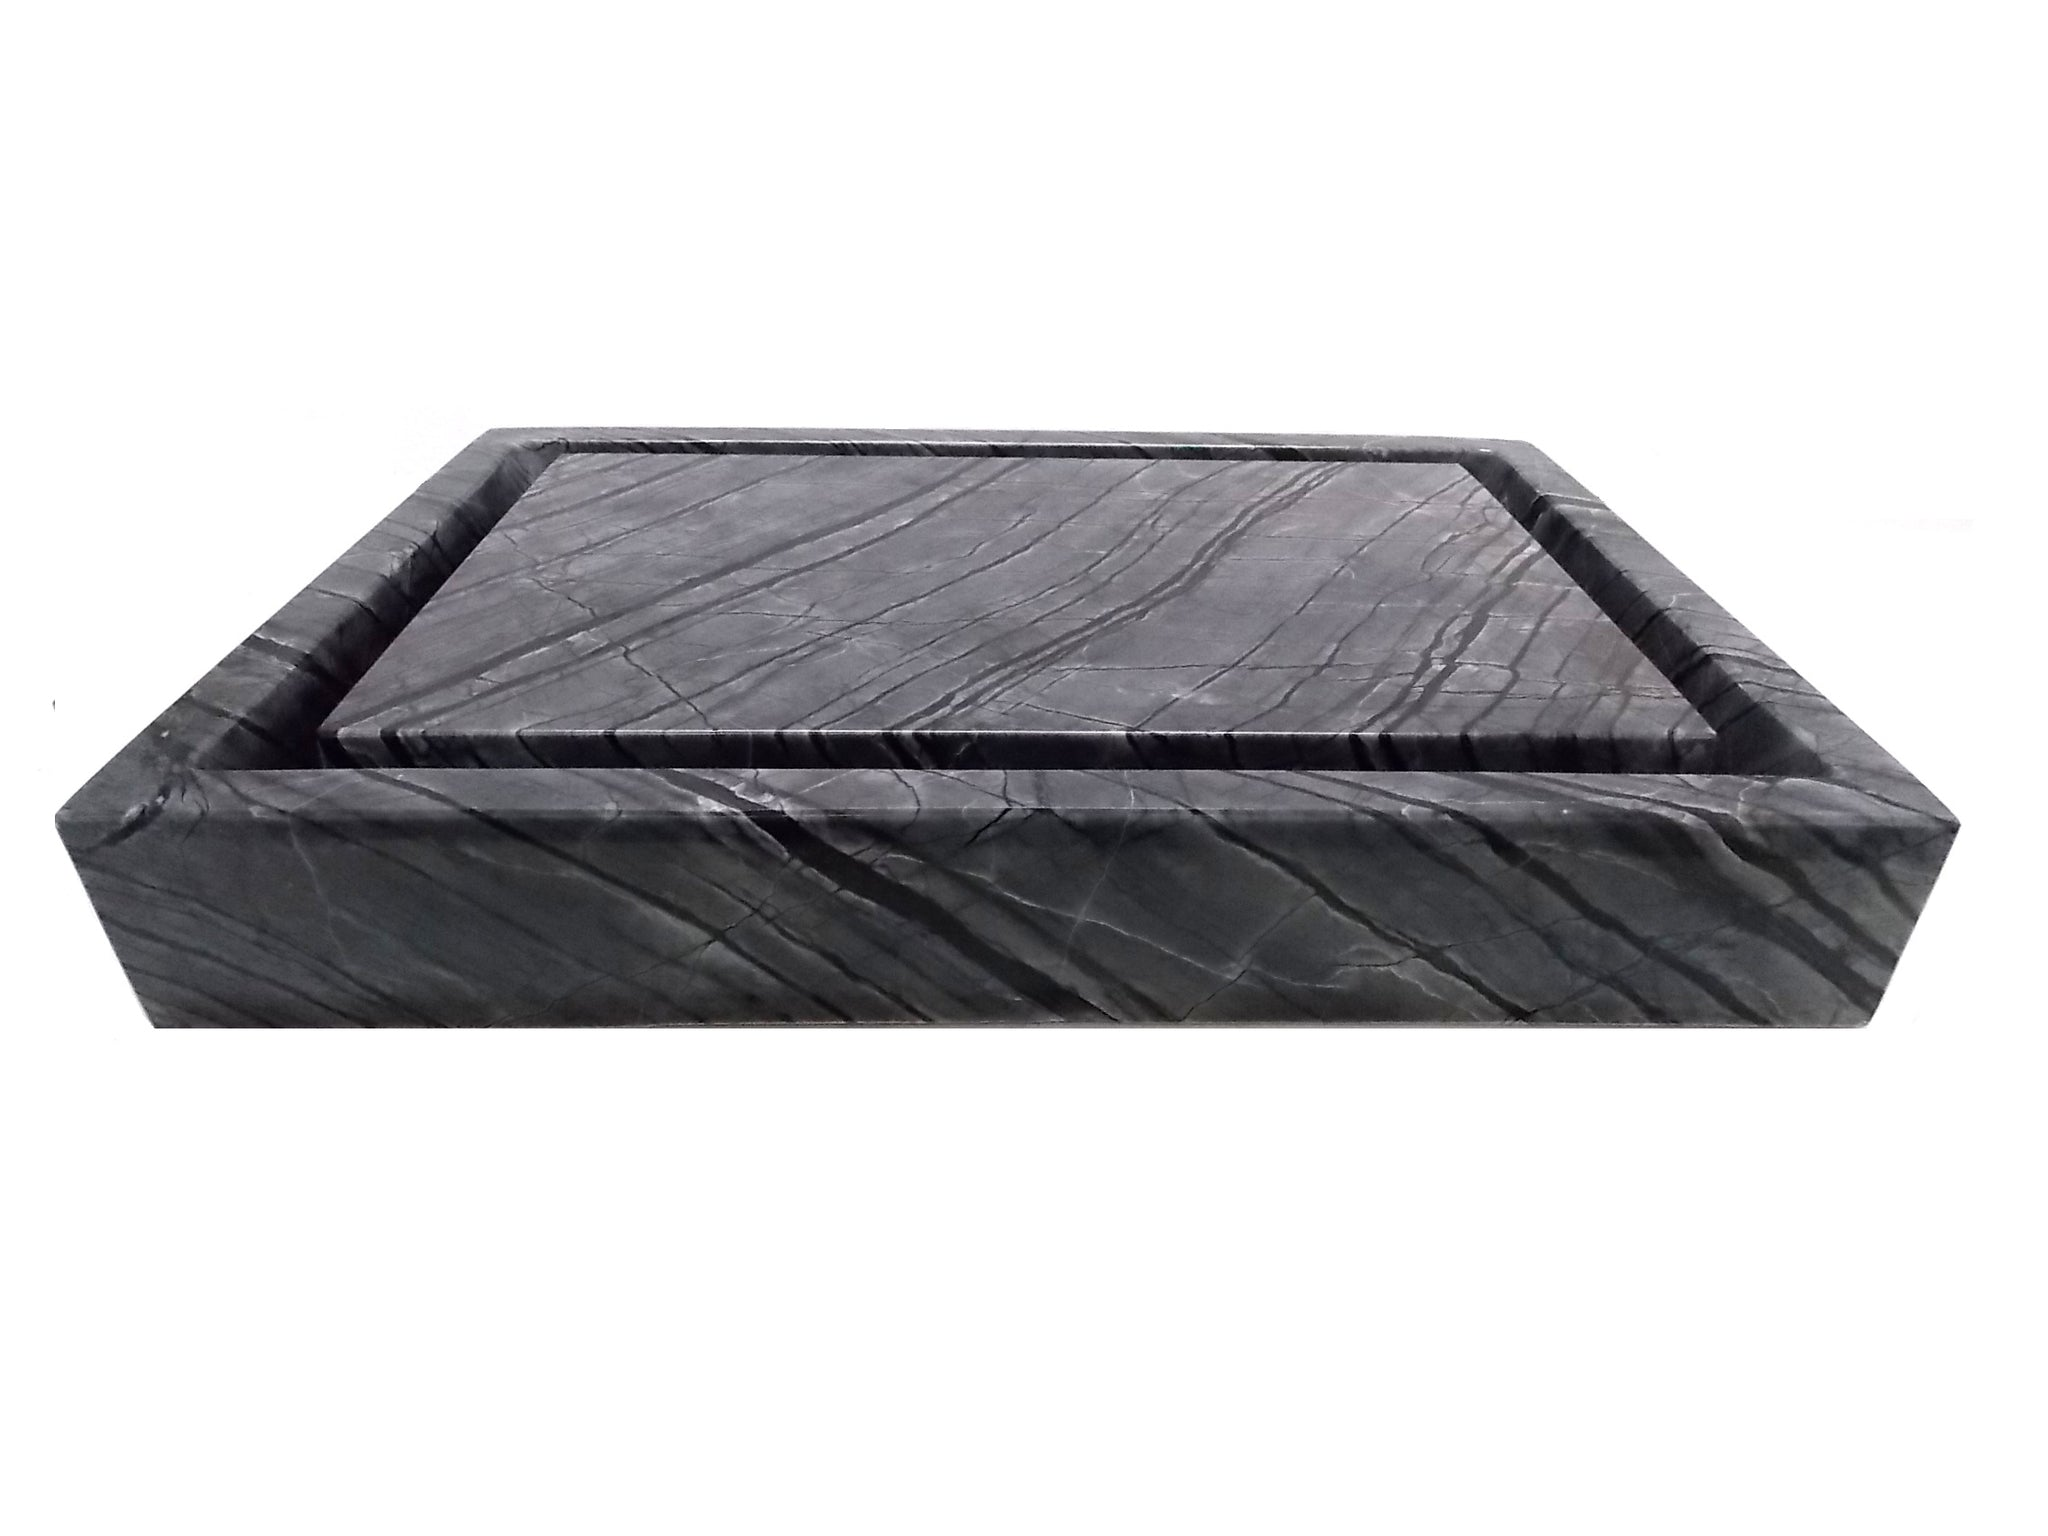 Rectangular Infinity Pool Sink - Polished Black Marble